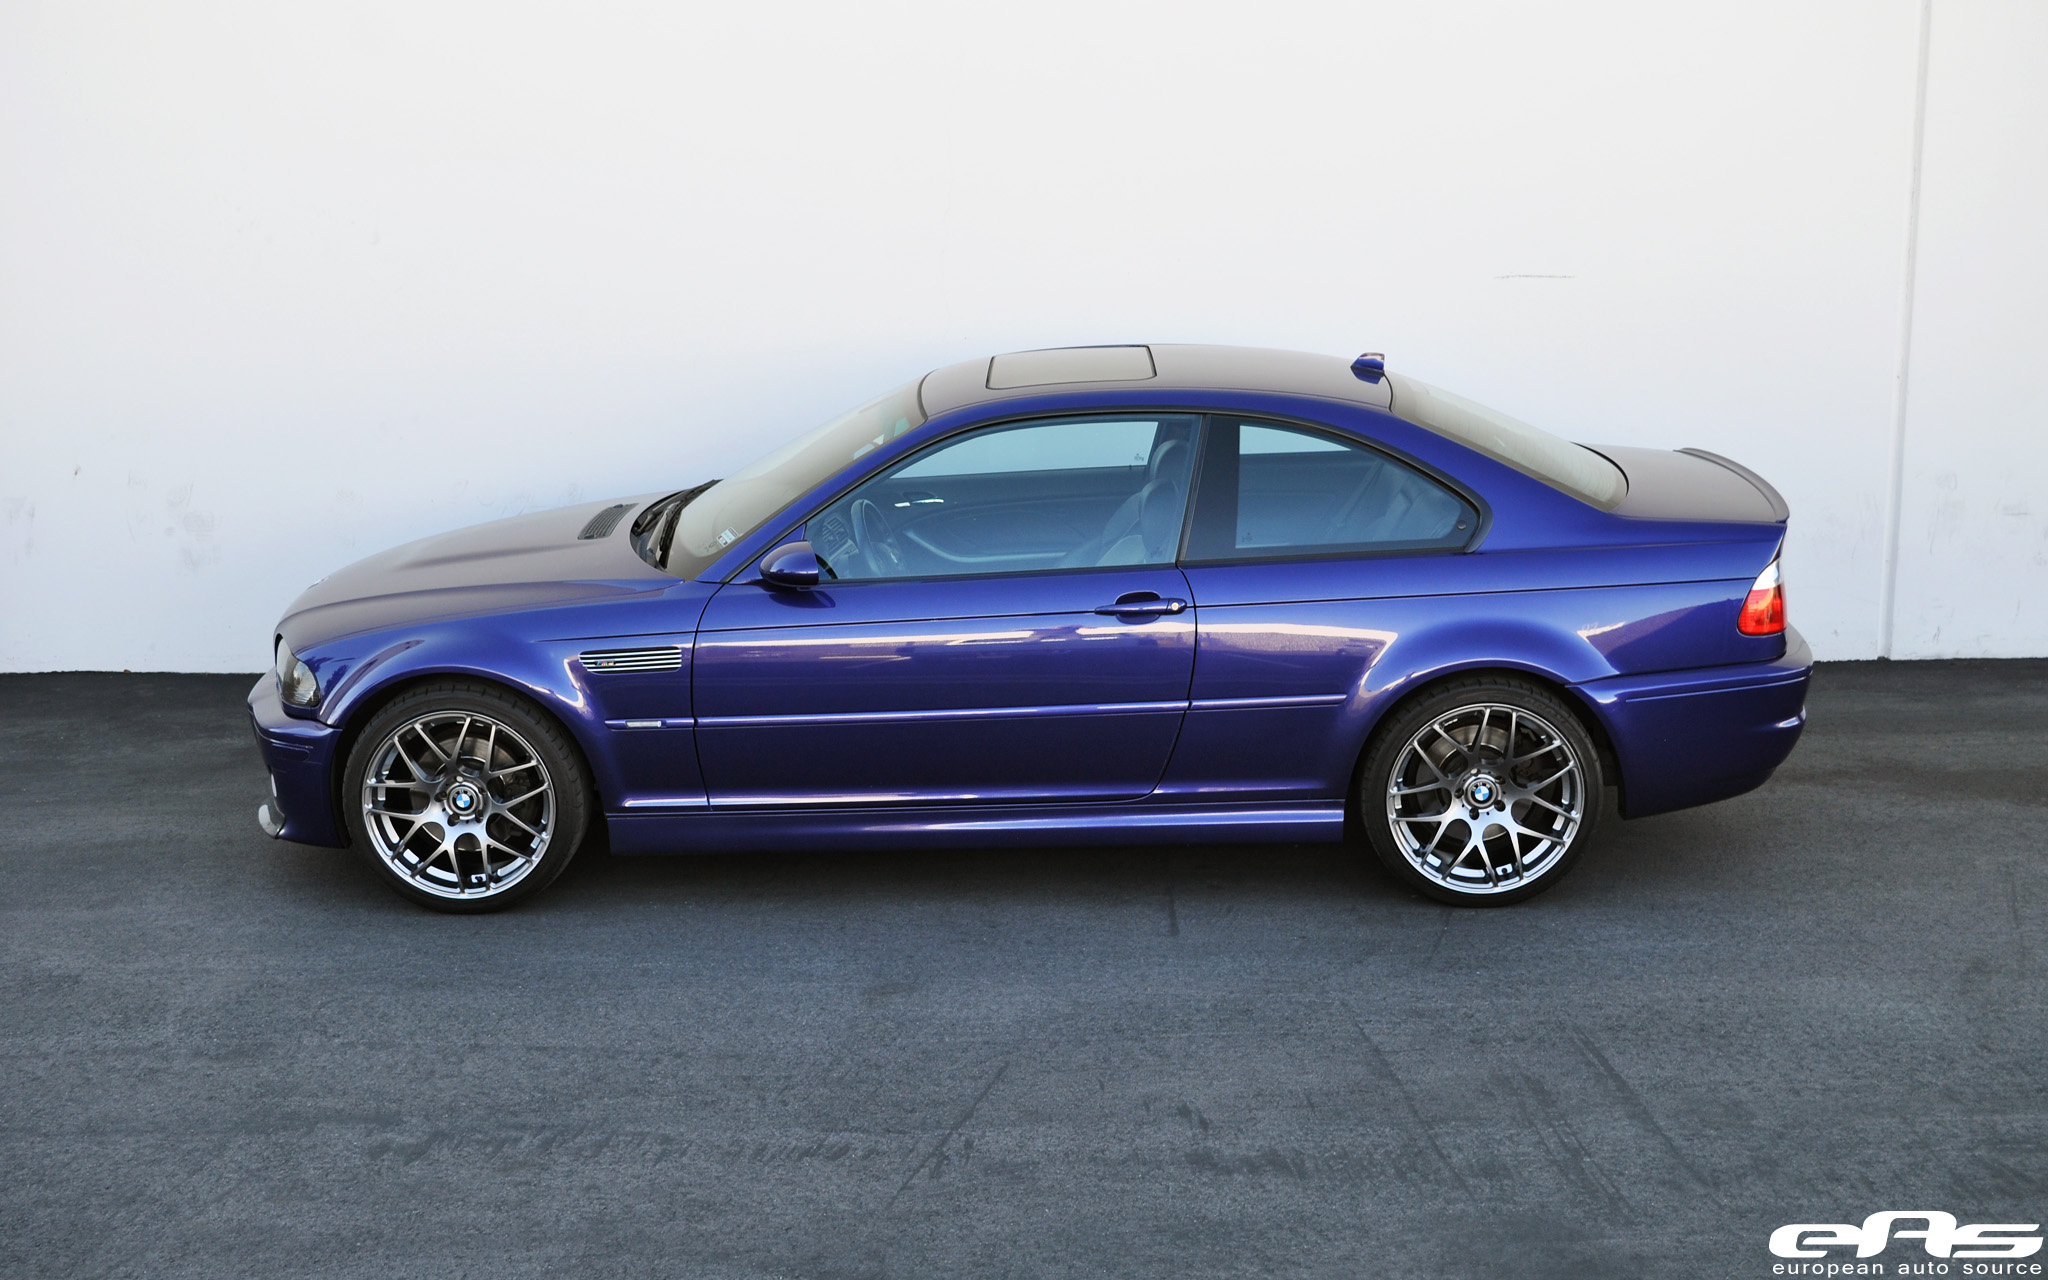 Velvet Blue Metallic E46 M3 On Gunmetal Vmr V710s Bmw Performance Parts Amp Services